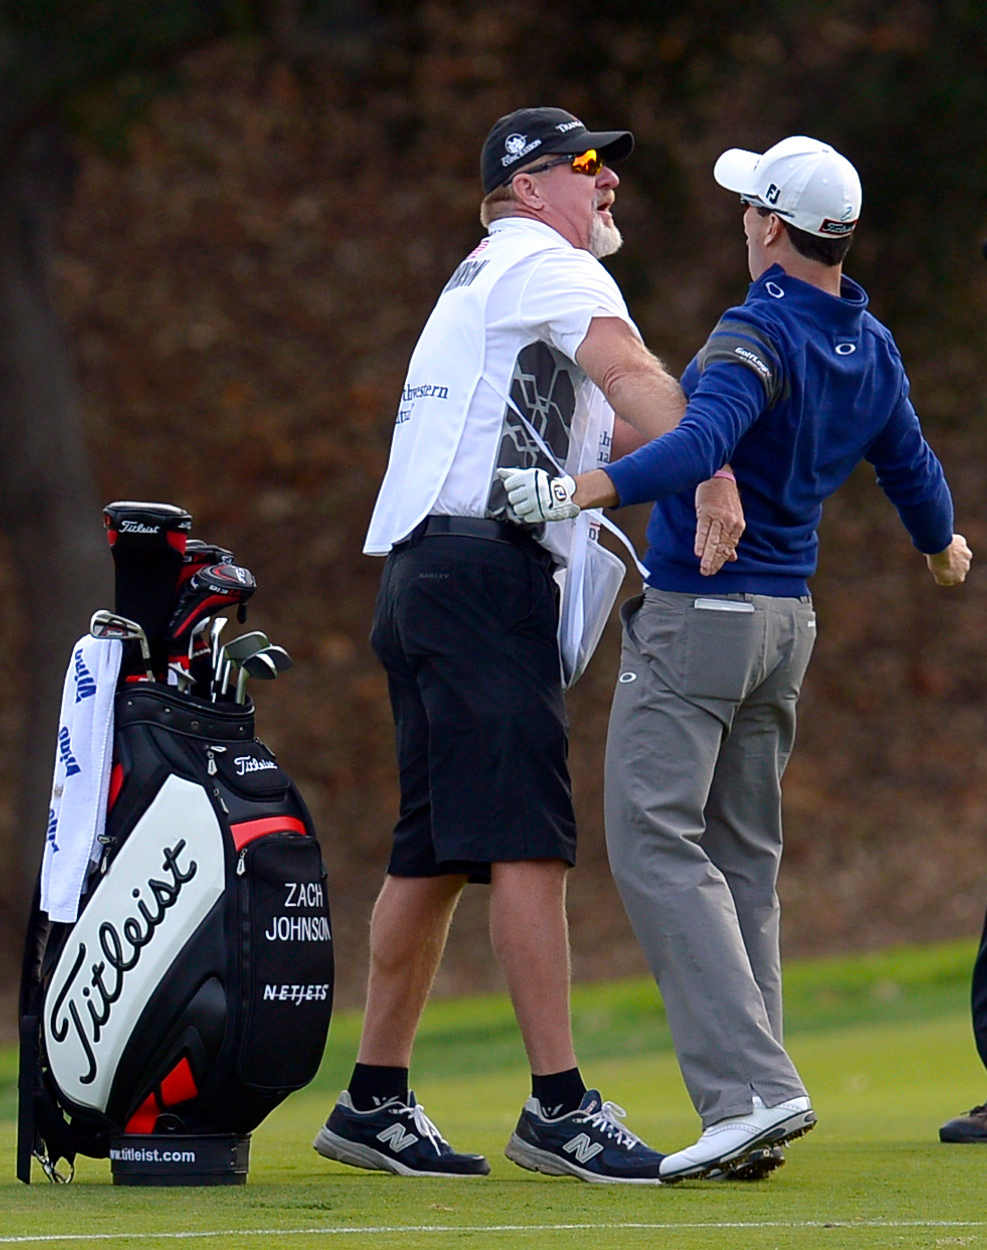 . Zach Johnson and his caddy Damon Green react after Johnson holed out from the drop zone on the 18th hole during the final round of the Northwestern Mutual World Challenge golf tournament at Sherwood Country Club, Sunday December 8, 2013, in Thousand Oaks, Calif.   Johnson would go on to beat Tiger Woods on a playoff hole.(Andy Holzman/Los Angeles Daily News)